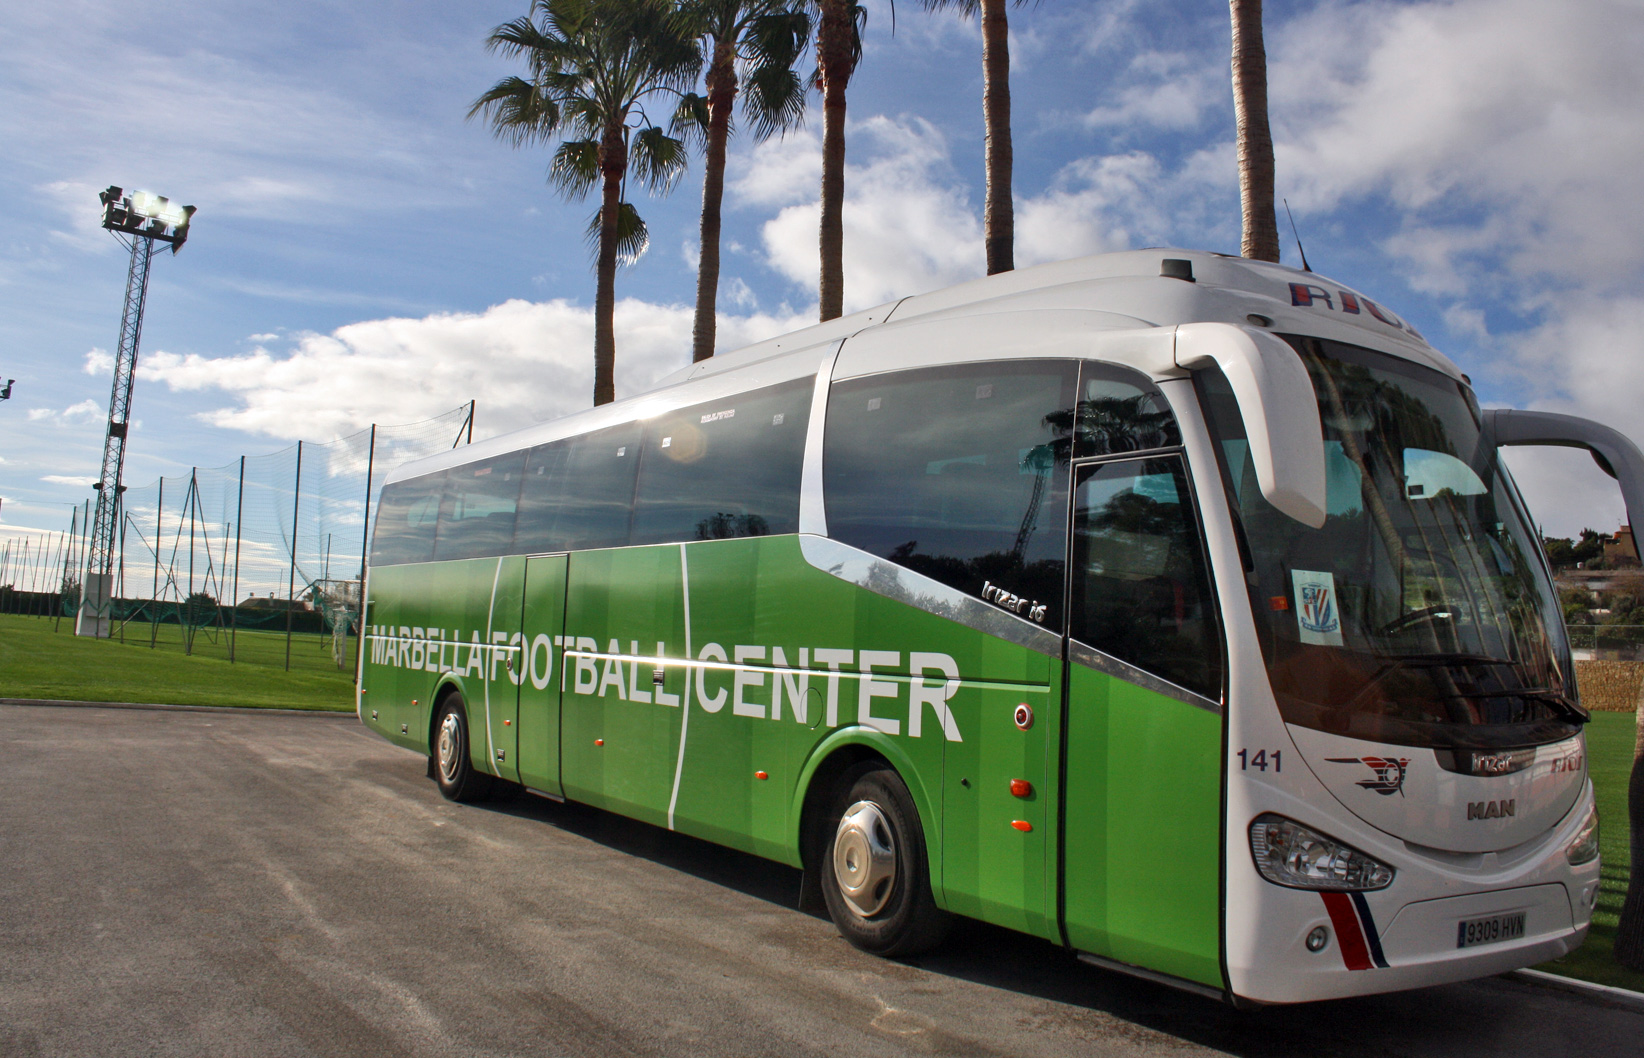 MARBELLA FOOTBALL CENTER TRANSPORT SERVICE